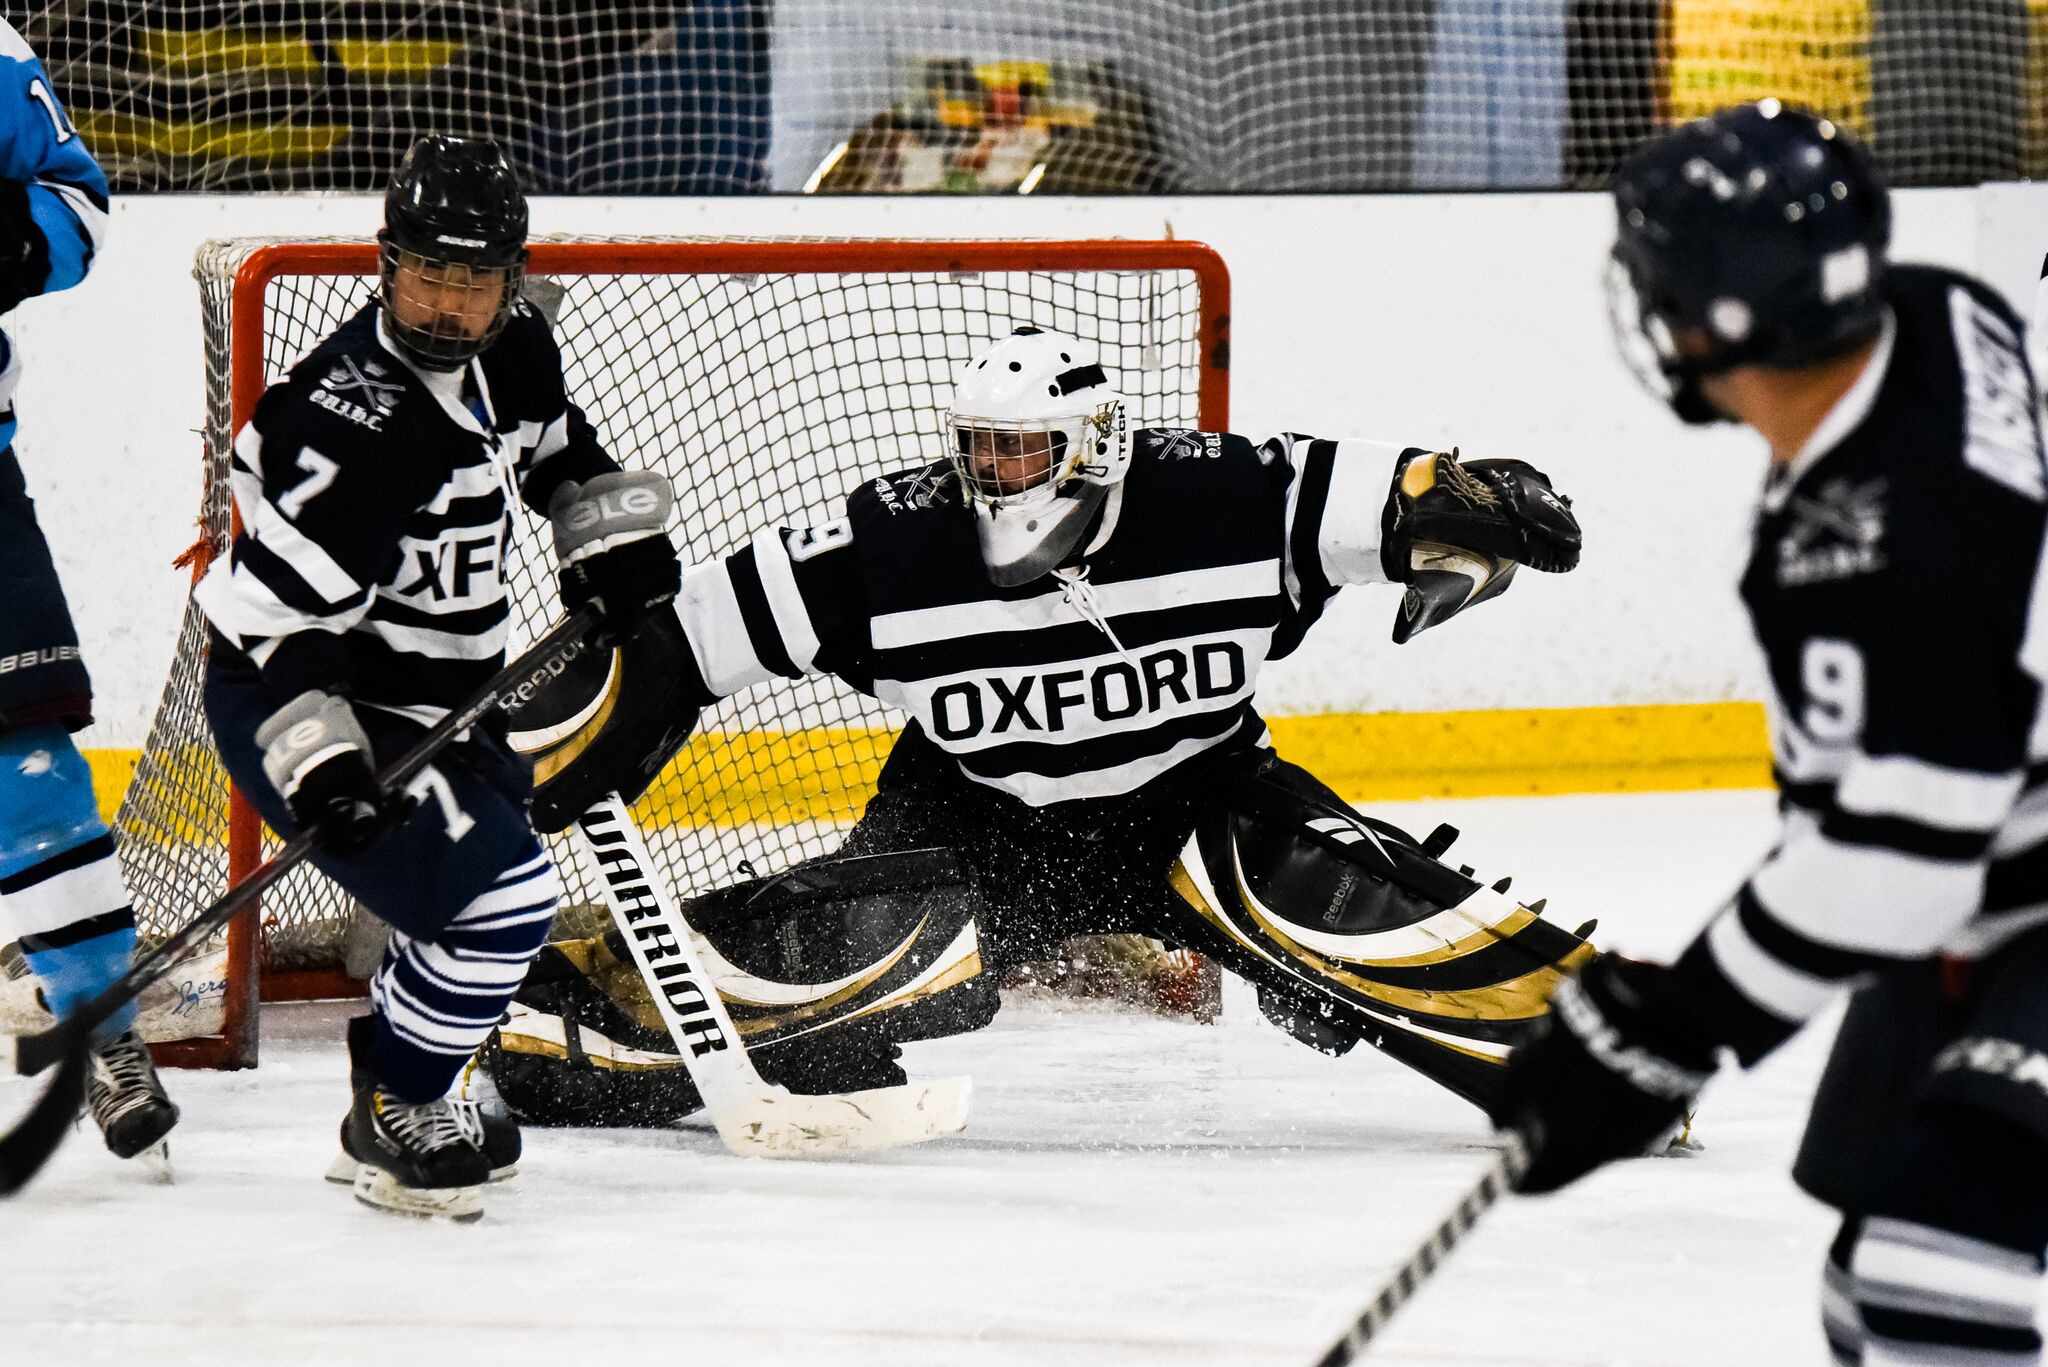 Three students from the Oxford Ice Hockey team playing in the Varsity match against Cambridge